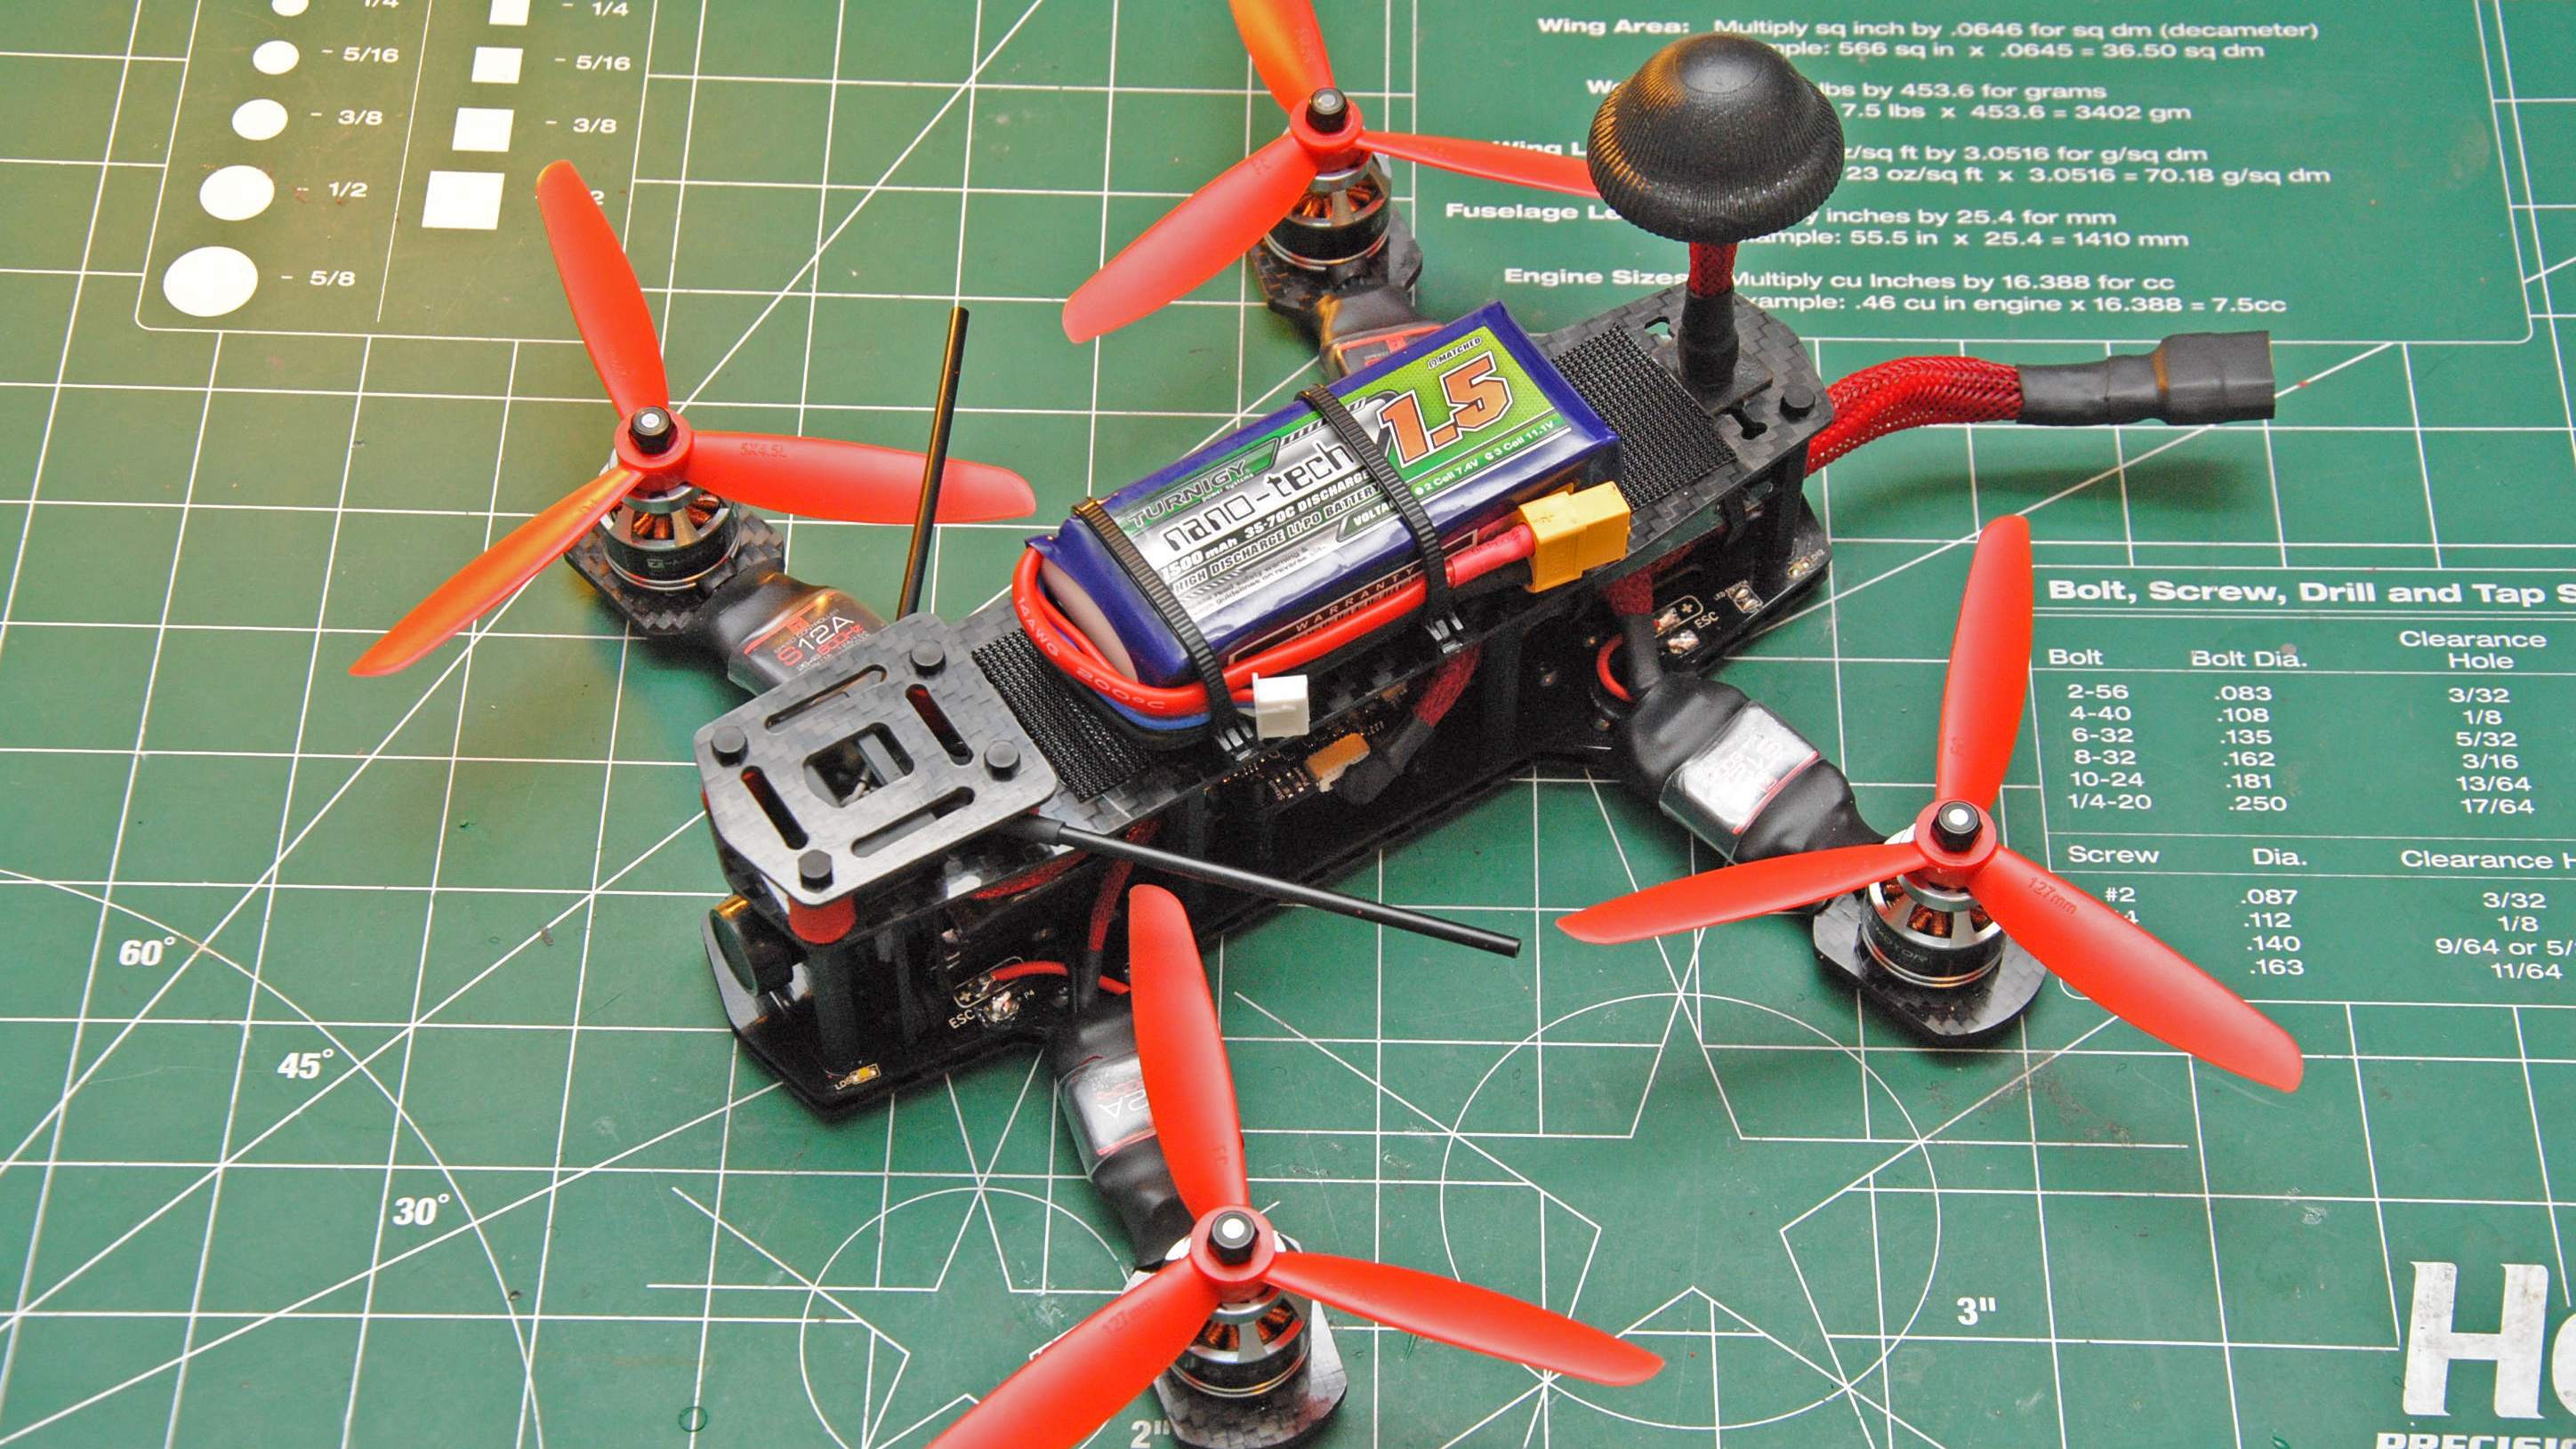 How To Get Into Hobby Rc Racing Quad Buyers Guide Tested Replacement Repair Part Circuit Board For R C Helicopter Radio Control Before We Start